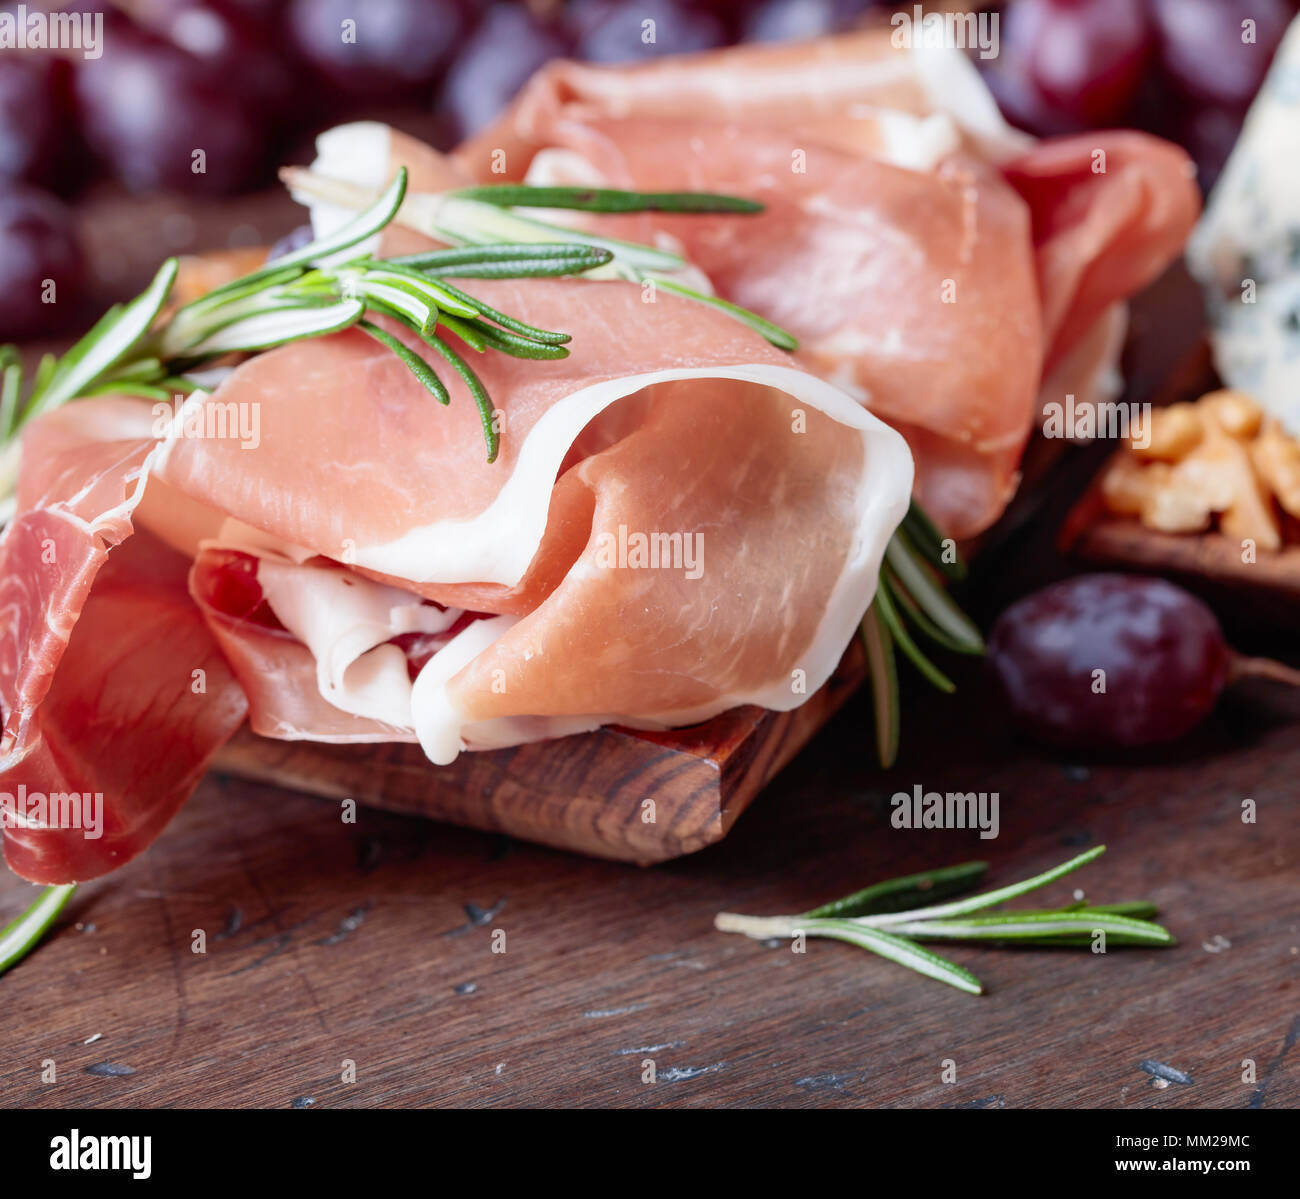 Prosciutto with grapes and rosemary on a old wooden table. - Stock Image